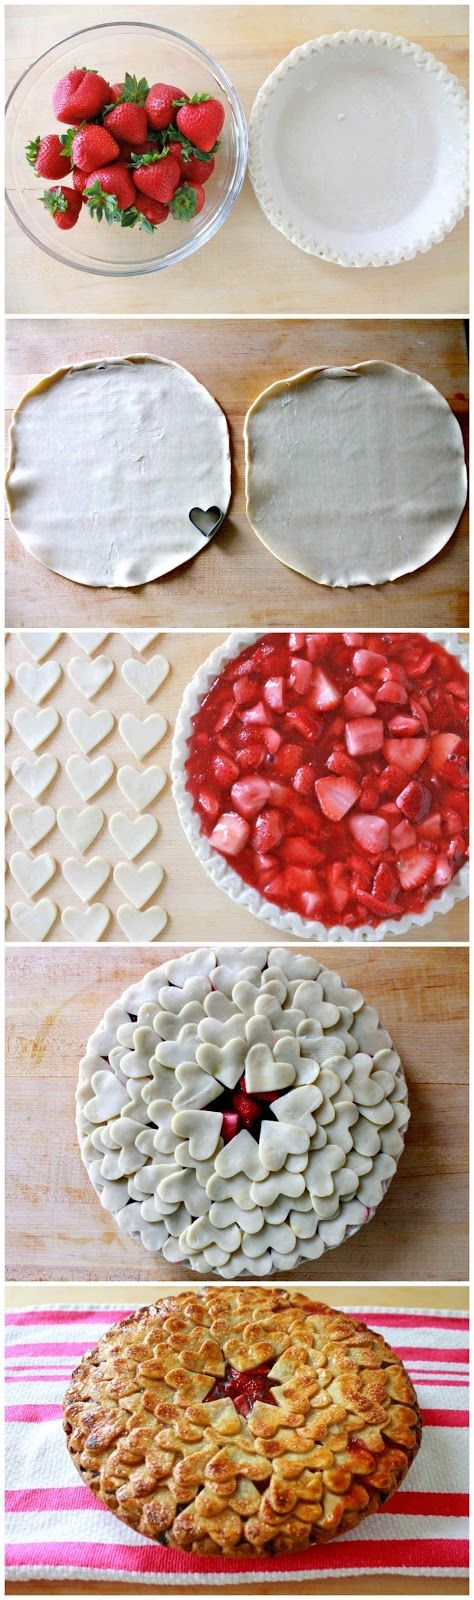 Strawberry Heart Pie - Valentines Day